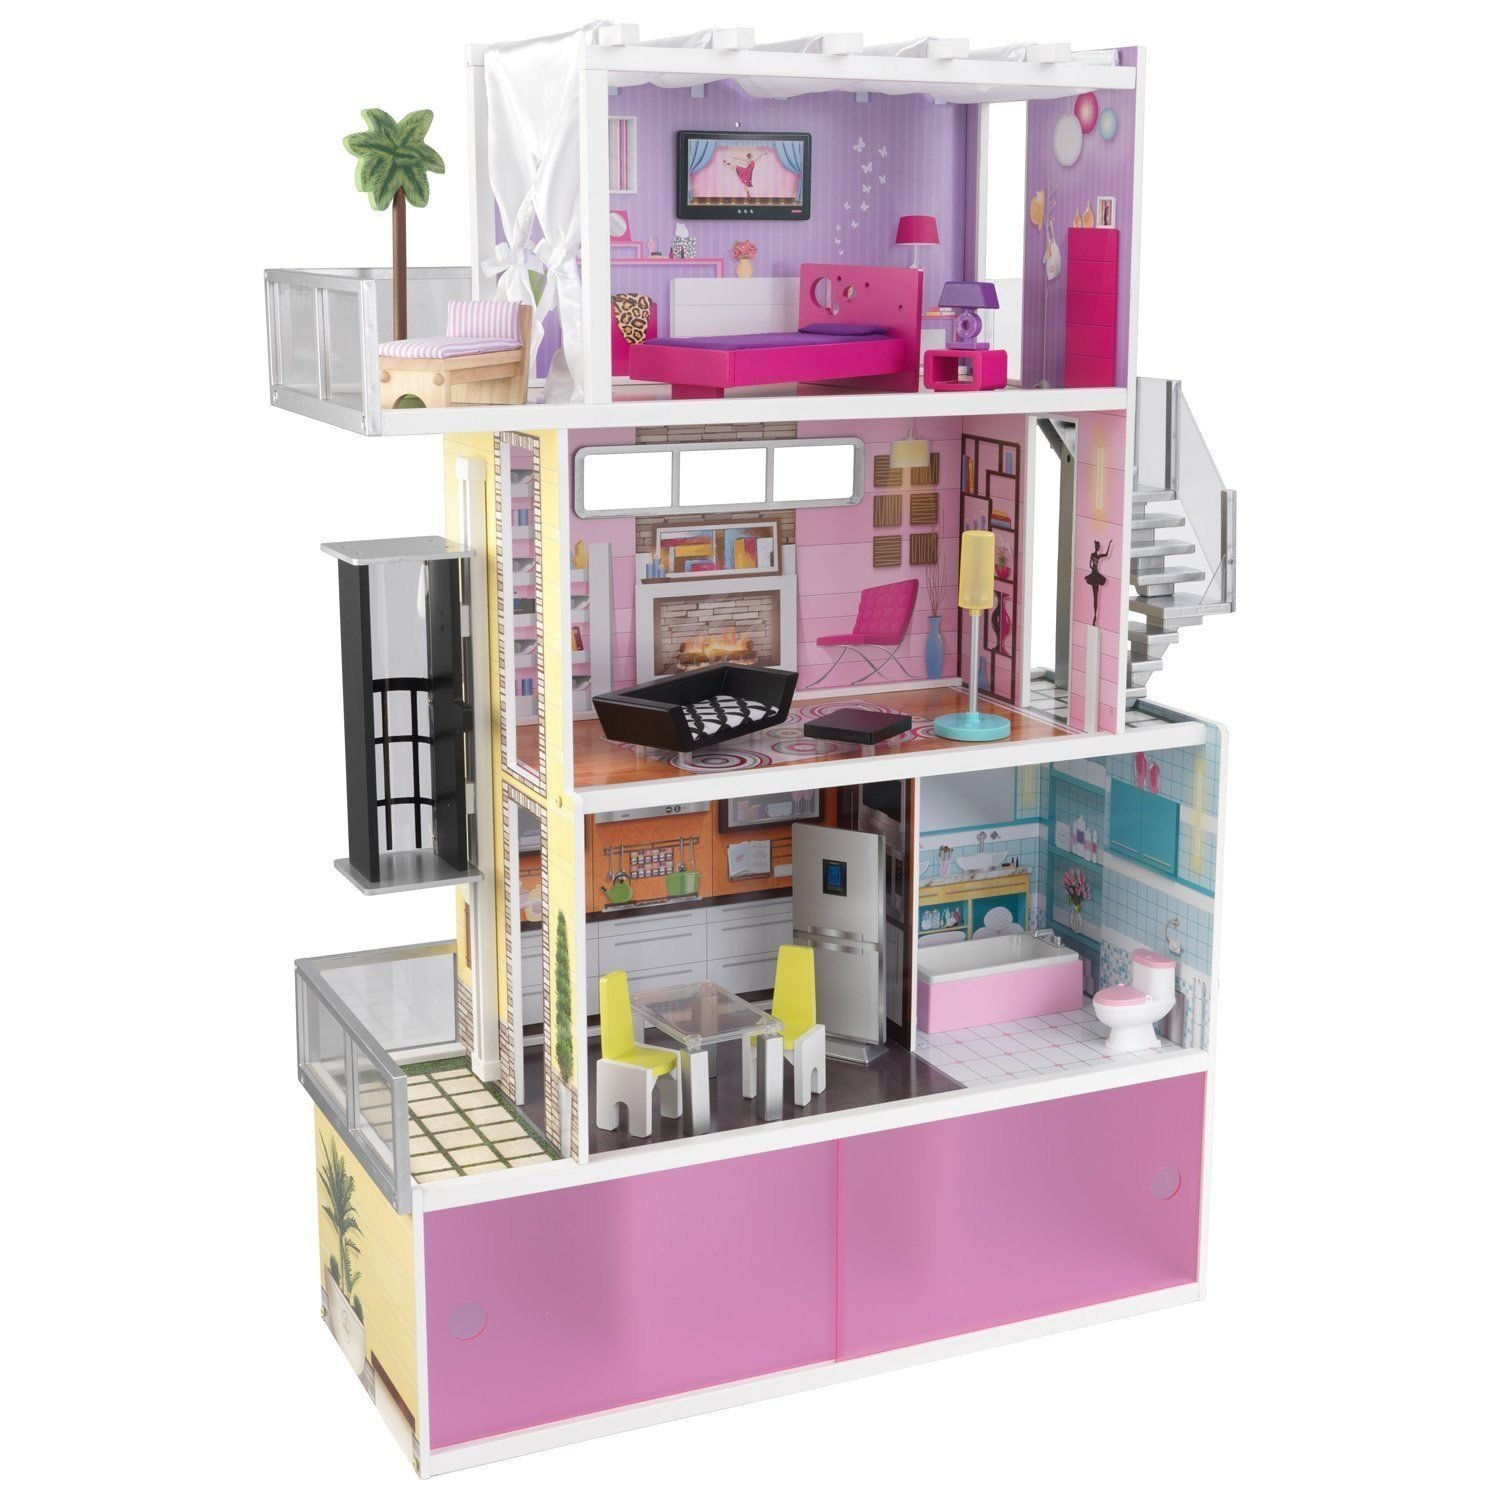 "KidKraft Wooden Beachfront Mansion w 14 Furnitures Kids' Doll House for 12"" Doll"